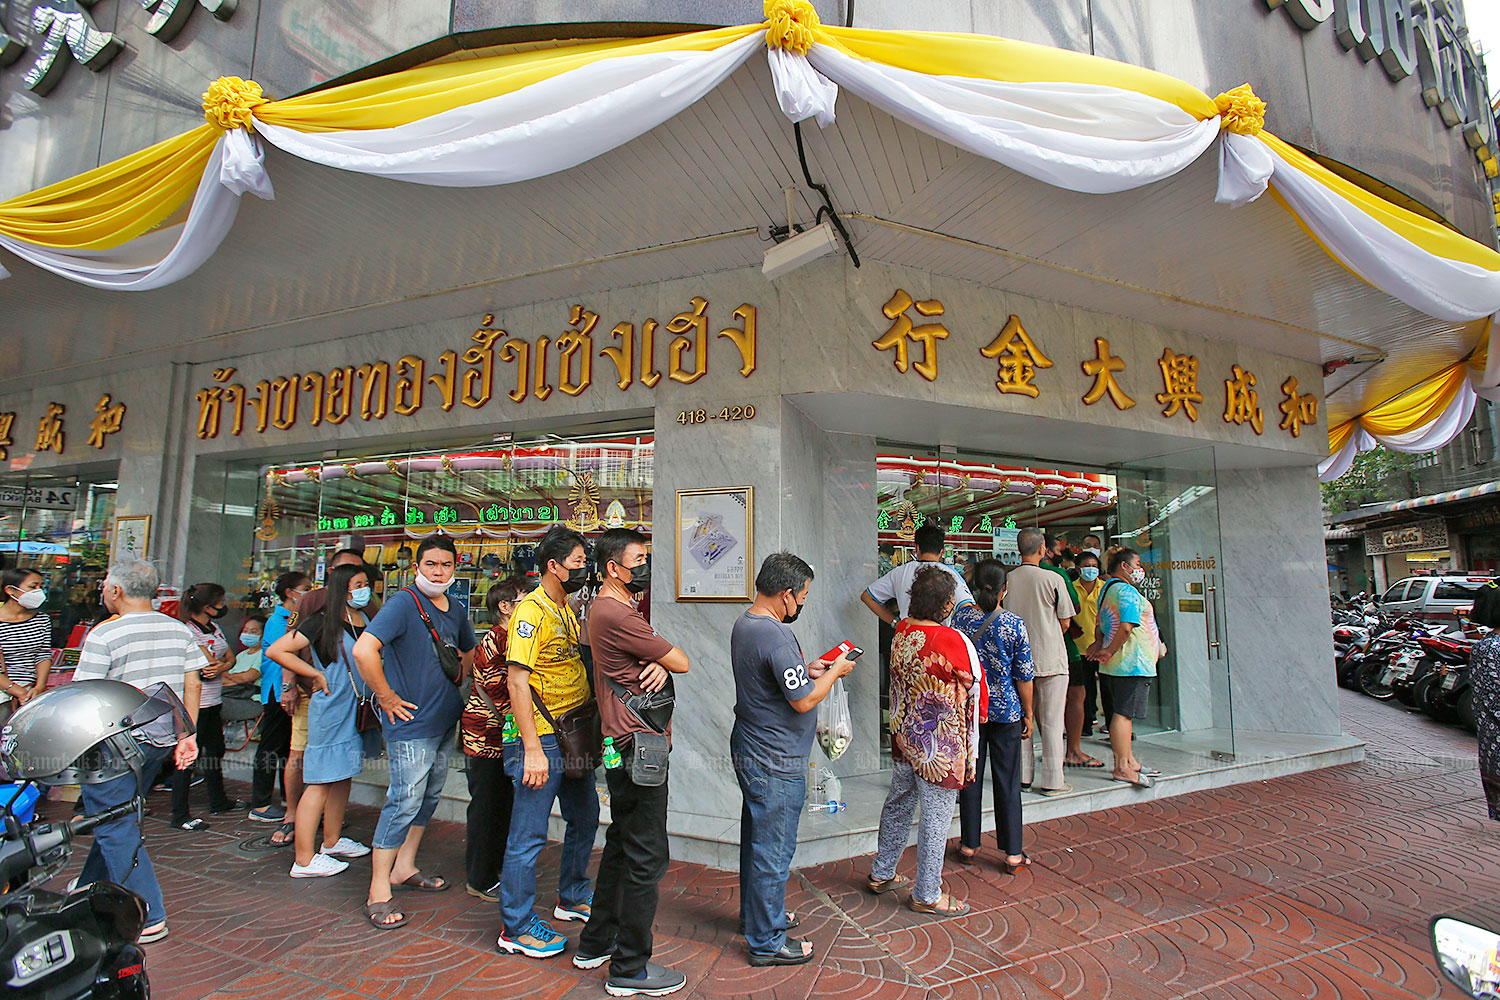 A long queue formed at a Hua Seng Heng gold shop on Yaowarat Road in late July. Gold prices rebounded yesterday from a three-week low on Wednesday. (Bangkok Post photo)